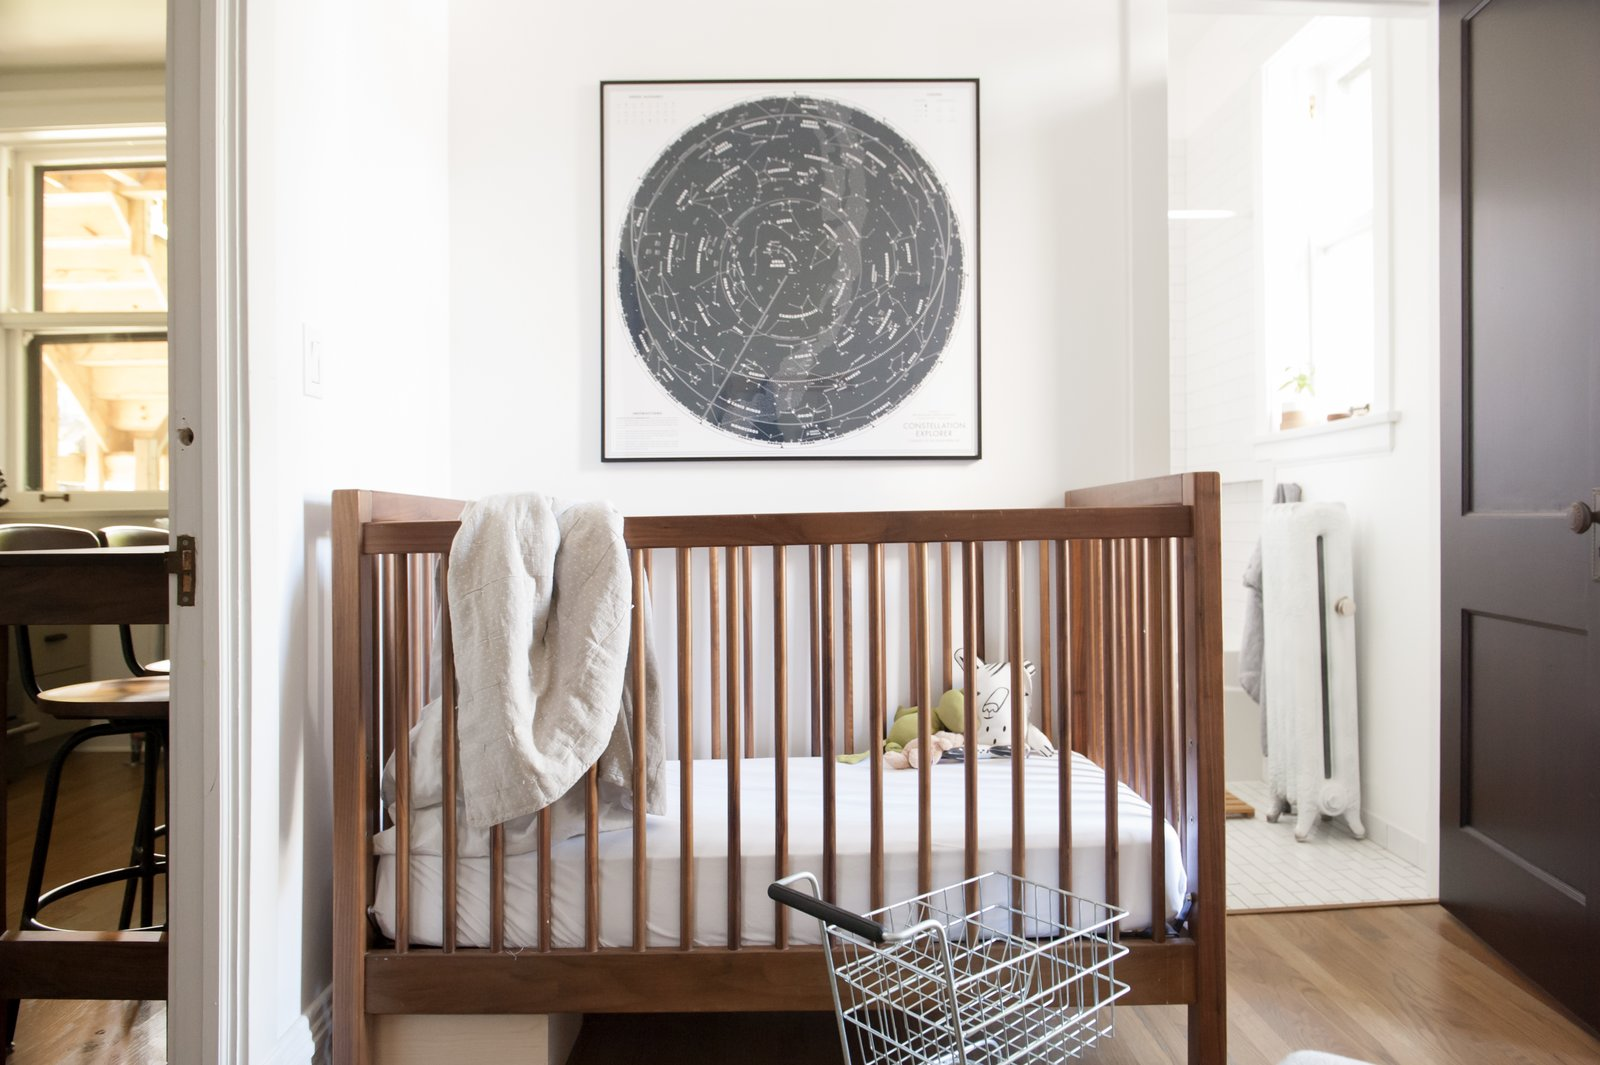 Kids Room, Bedroom Room Type, Bed, Medium Hardwood Floor, Neutral Gender, and Toddler Age  Best Photos from Simple and Beautiful Chicago Family Apartment